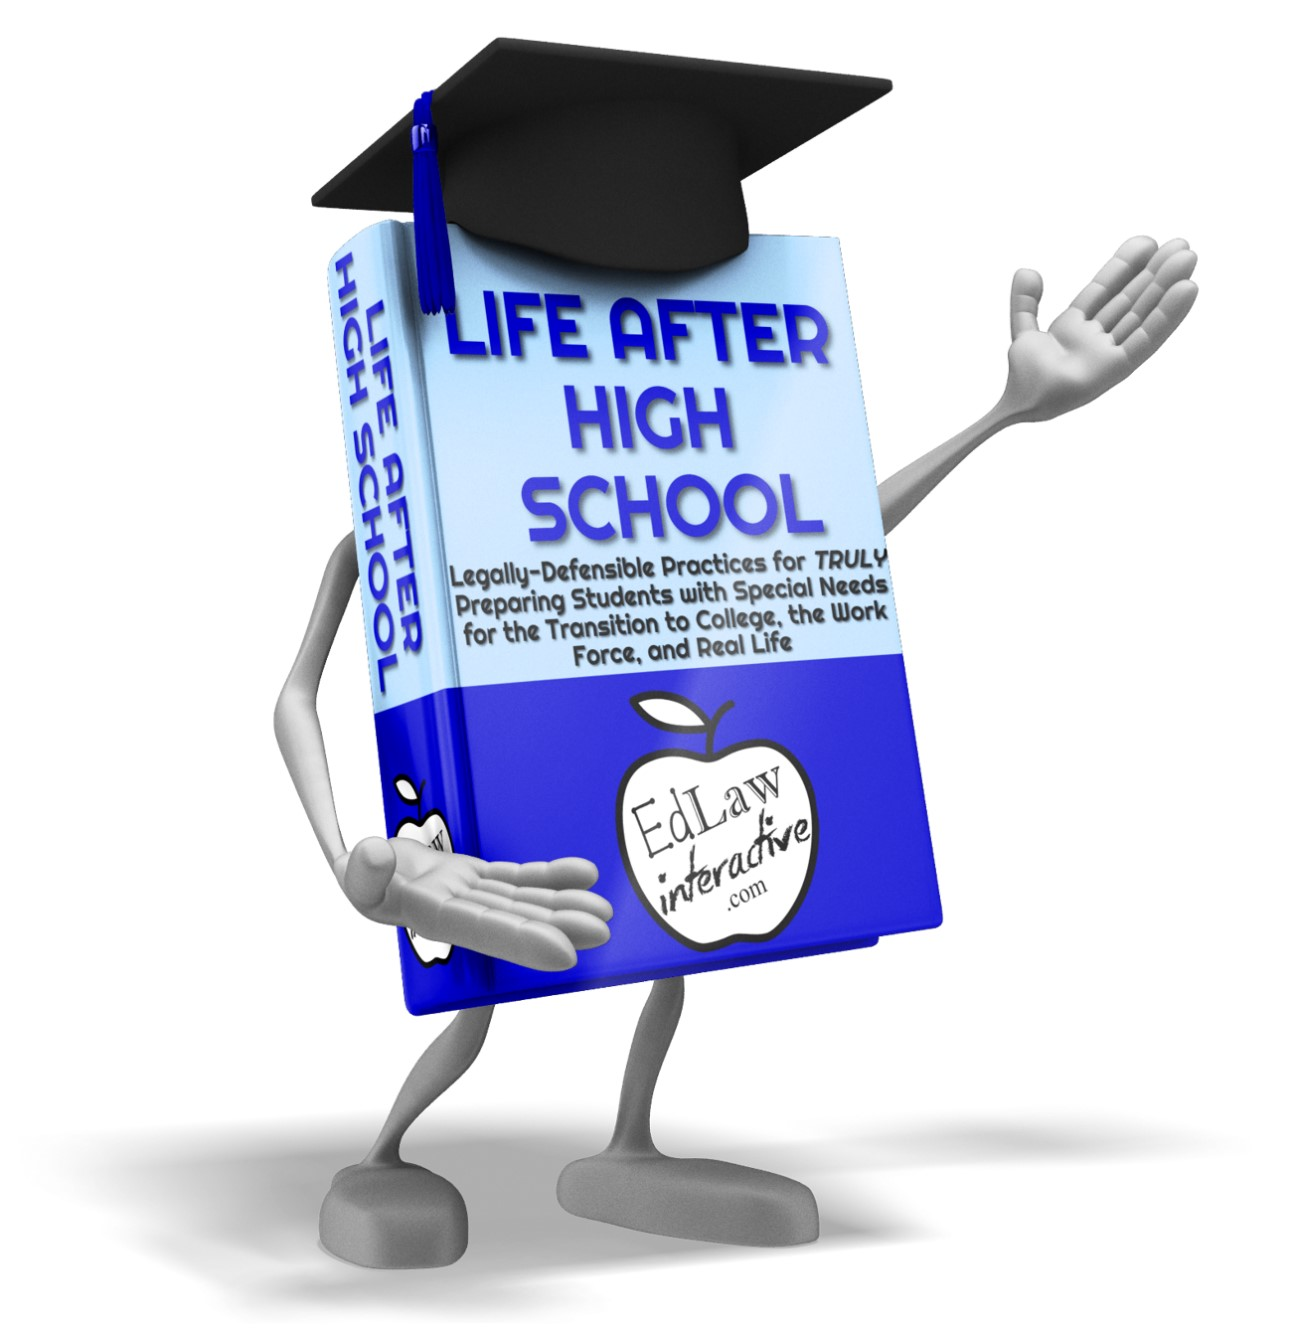 Life After High School: Transition